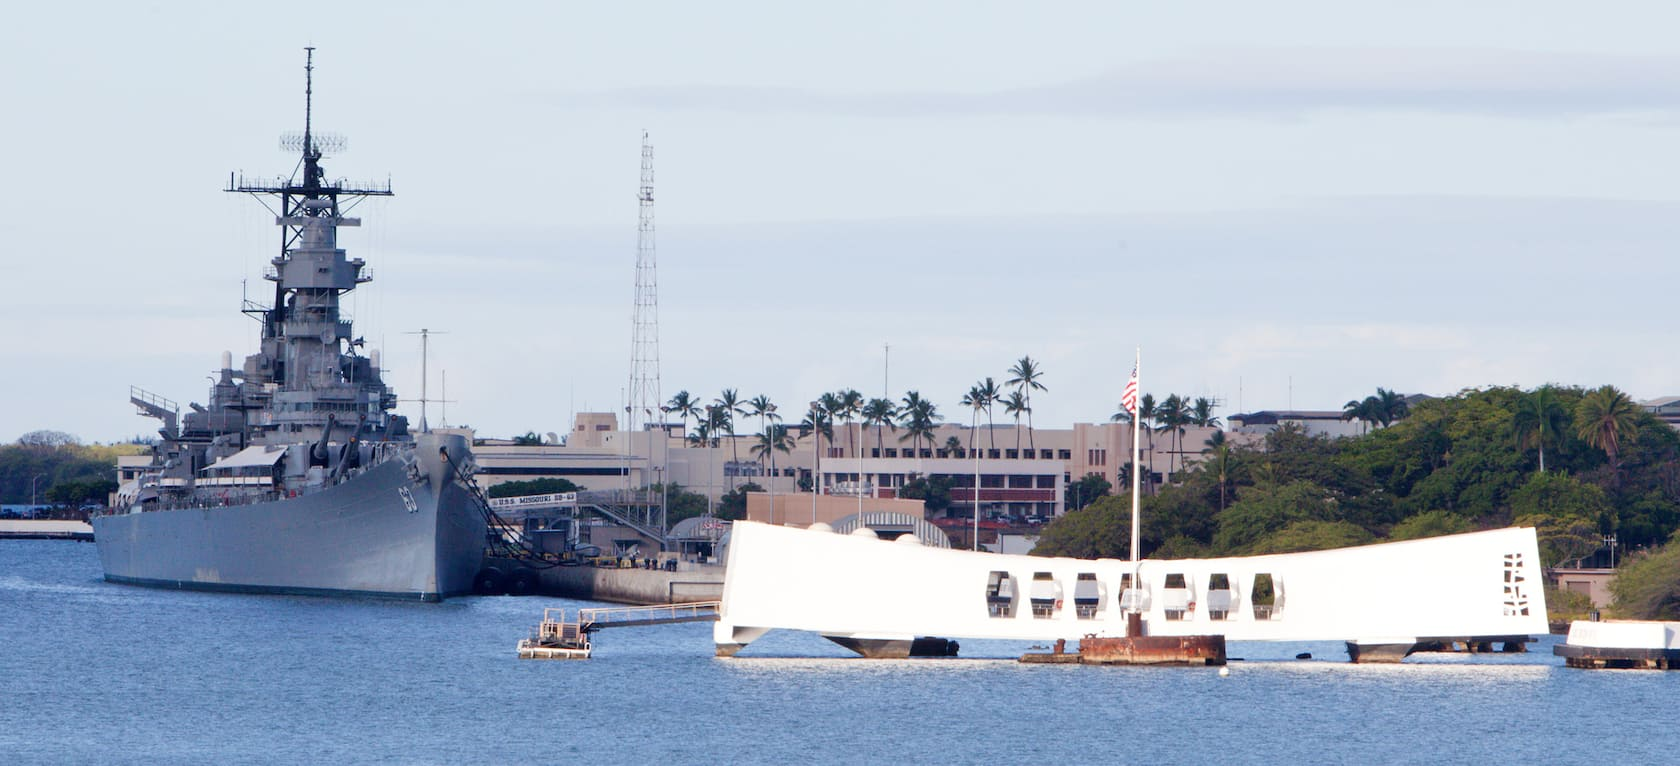 At Pearl Harbor, Hawaii, the broad geometric U S S Arizona Memorial is situated in the water beside the battleship U S S Missouri, which is docked at the pier